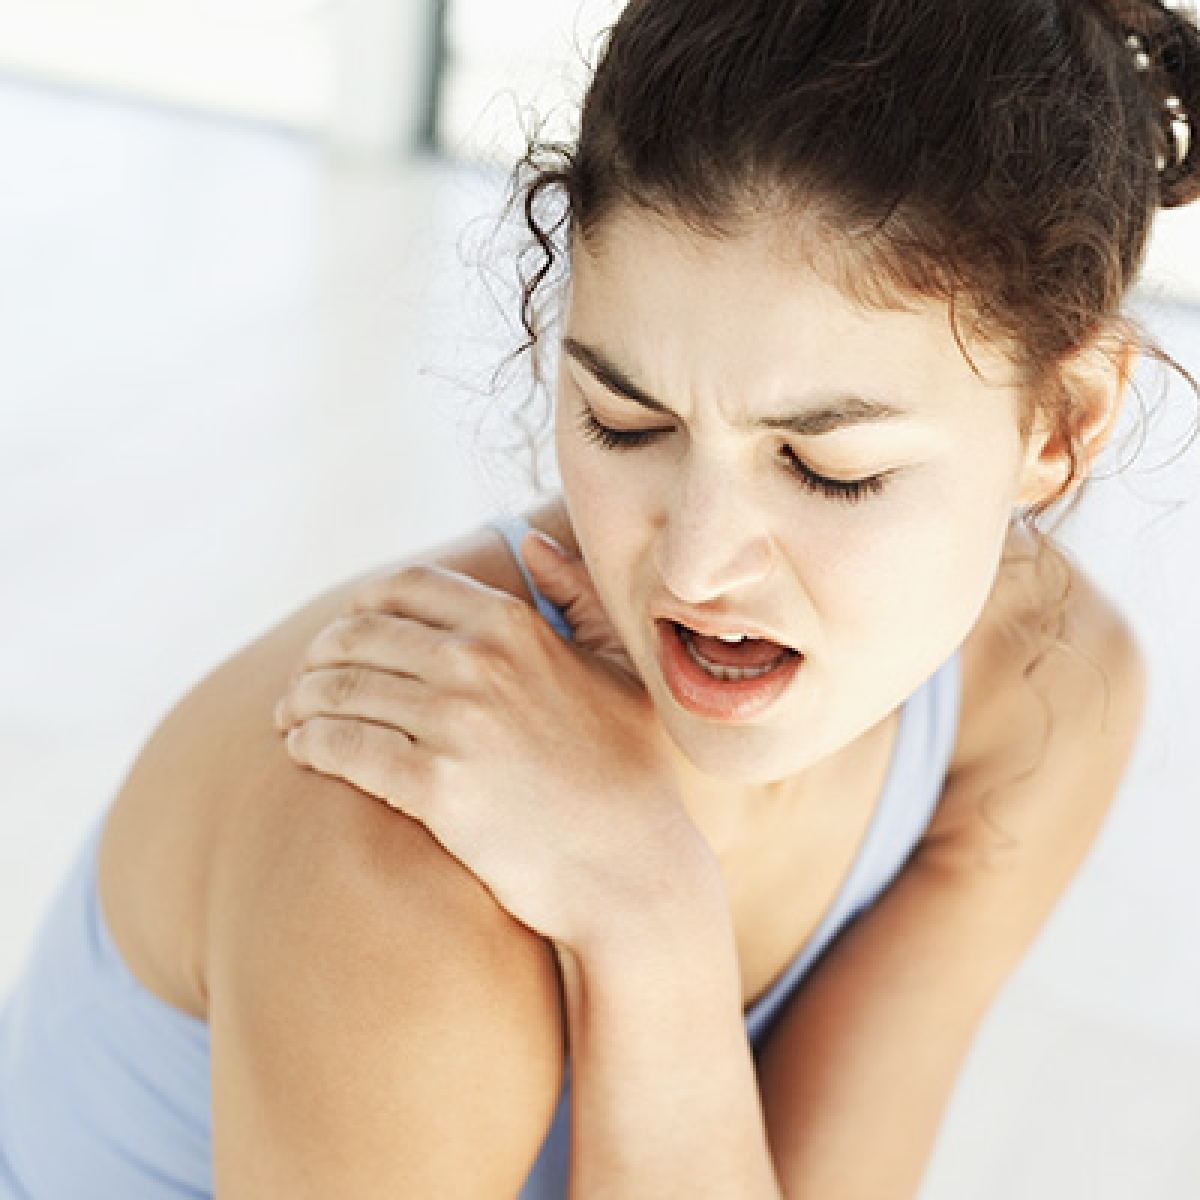 high angle view of a young woman holding her shoulder in pain